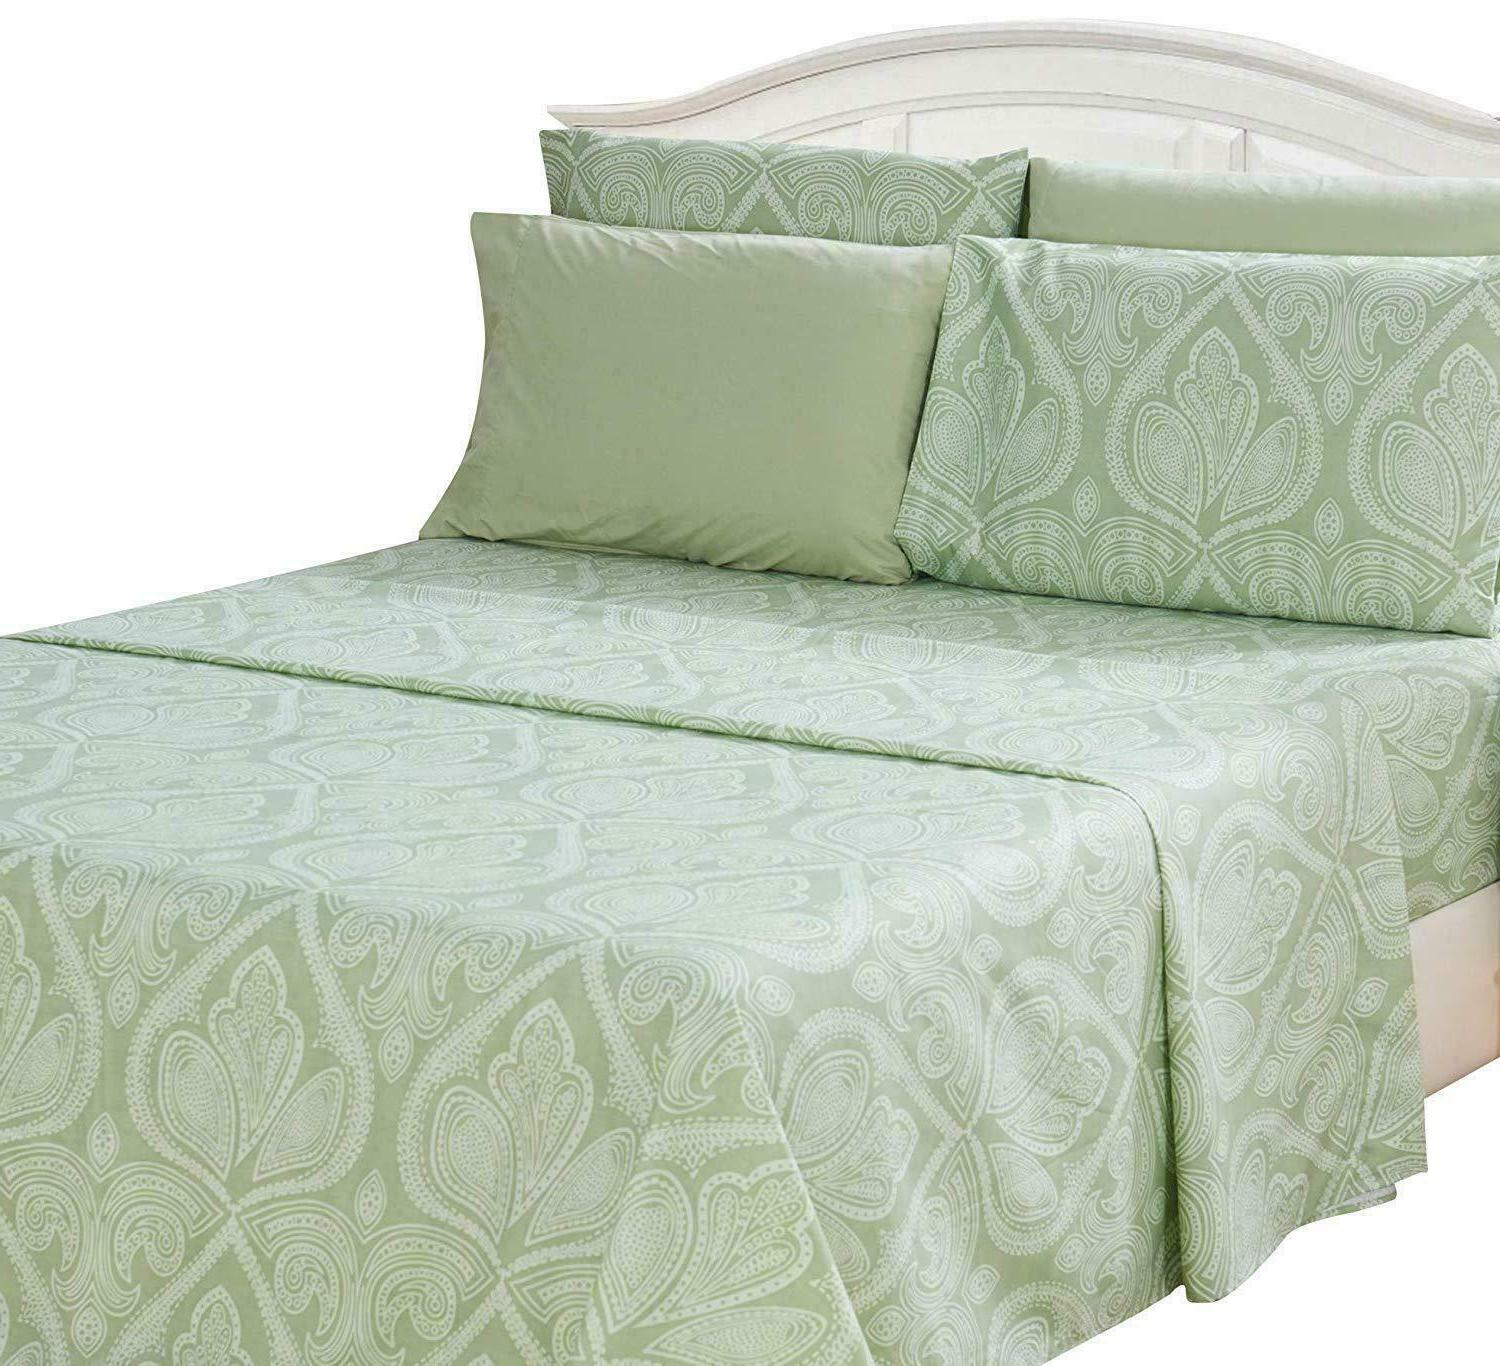 Deep 6 Piece 1800 Count Egyptian Comfort Sheet Set